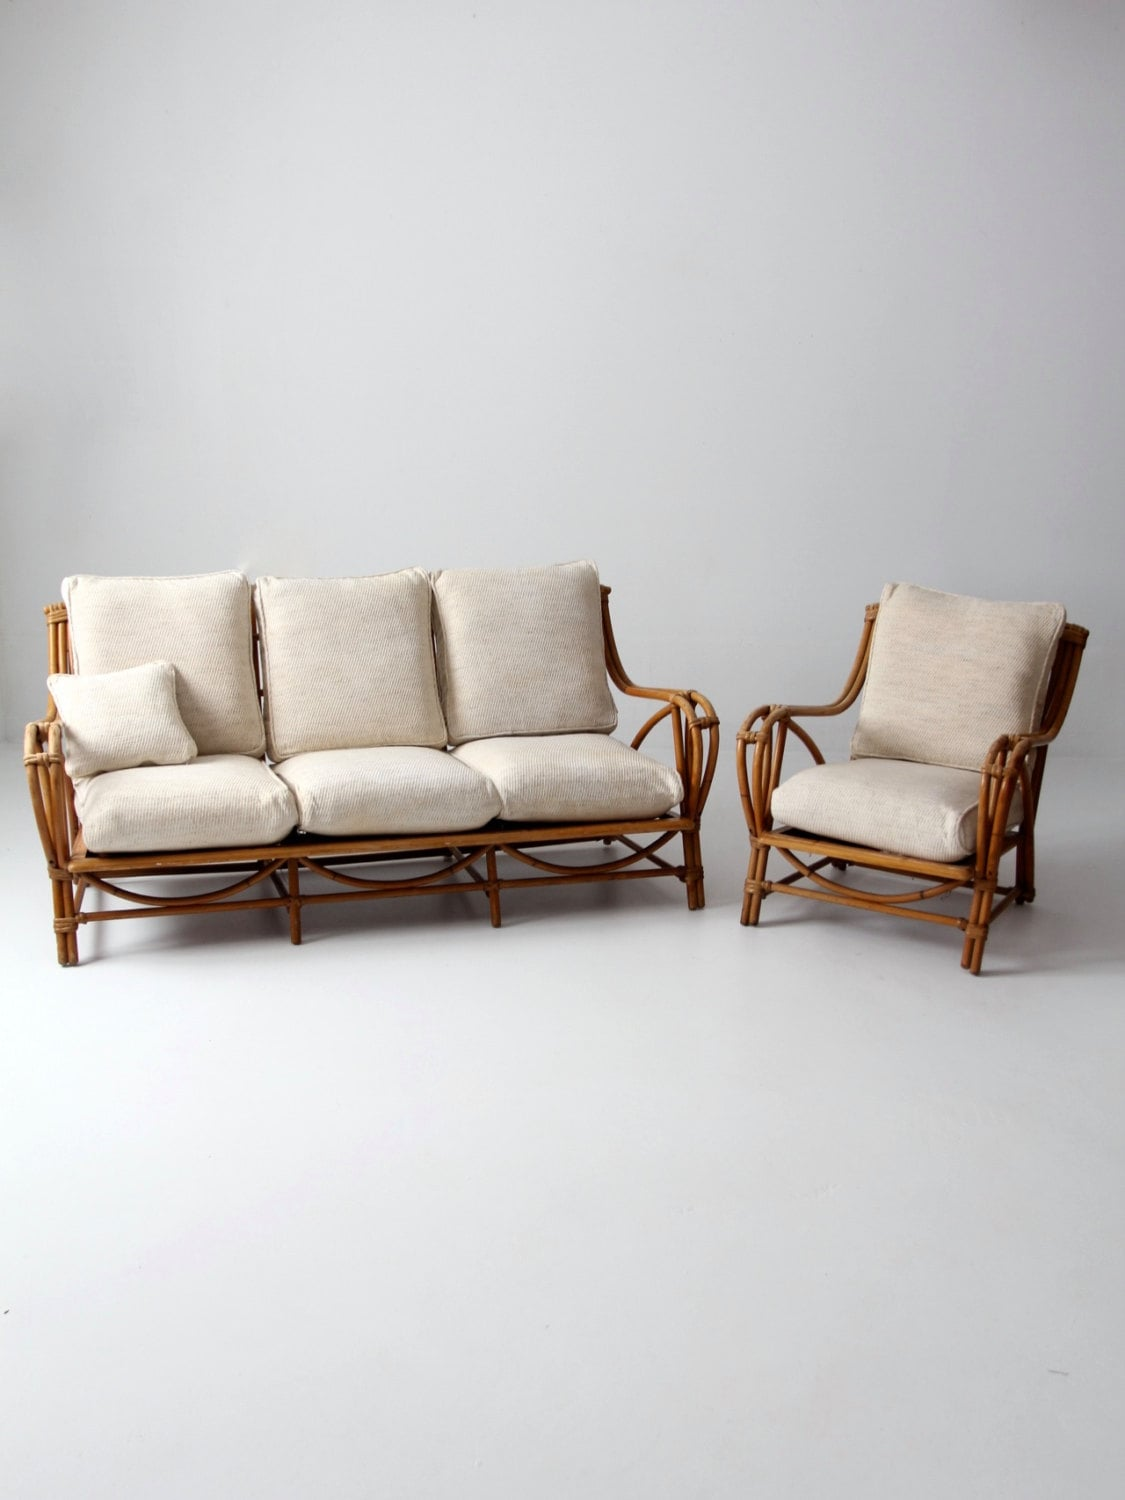 vintage rattan furniture set couch and chair bamboo with With seat covers for cane furniture